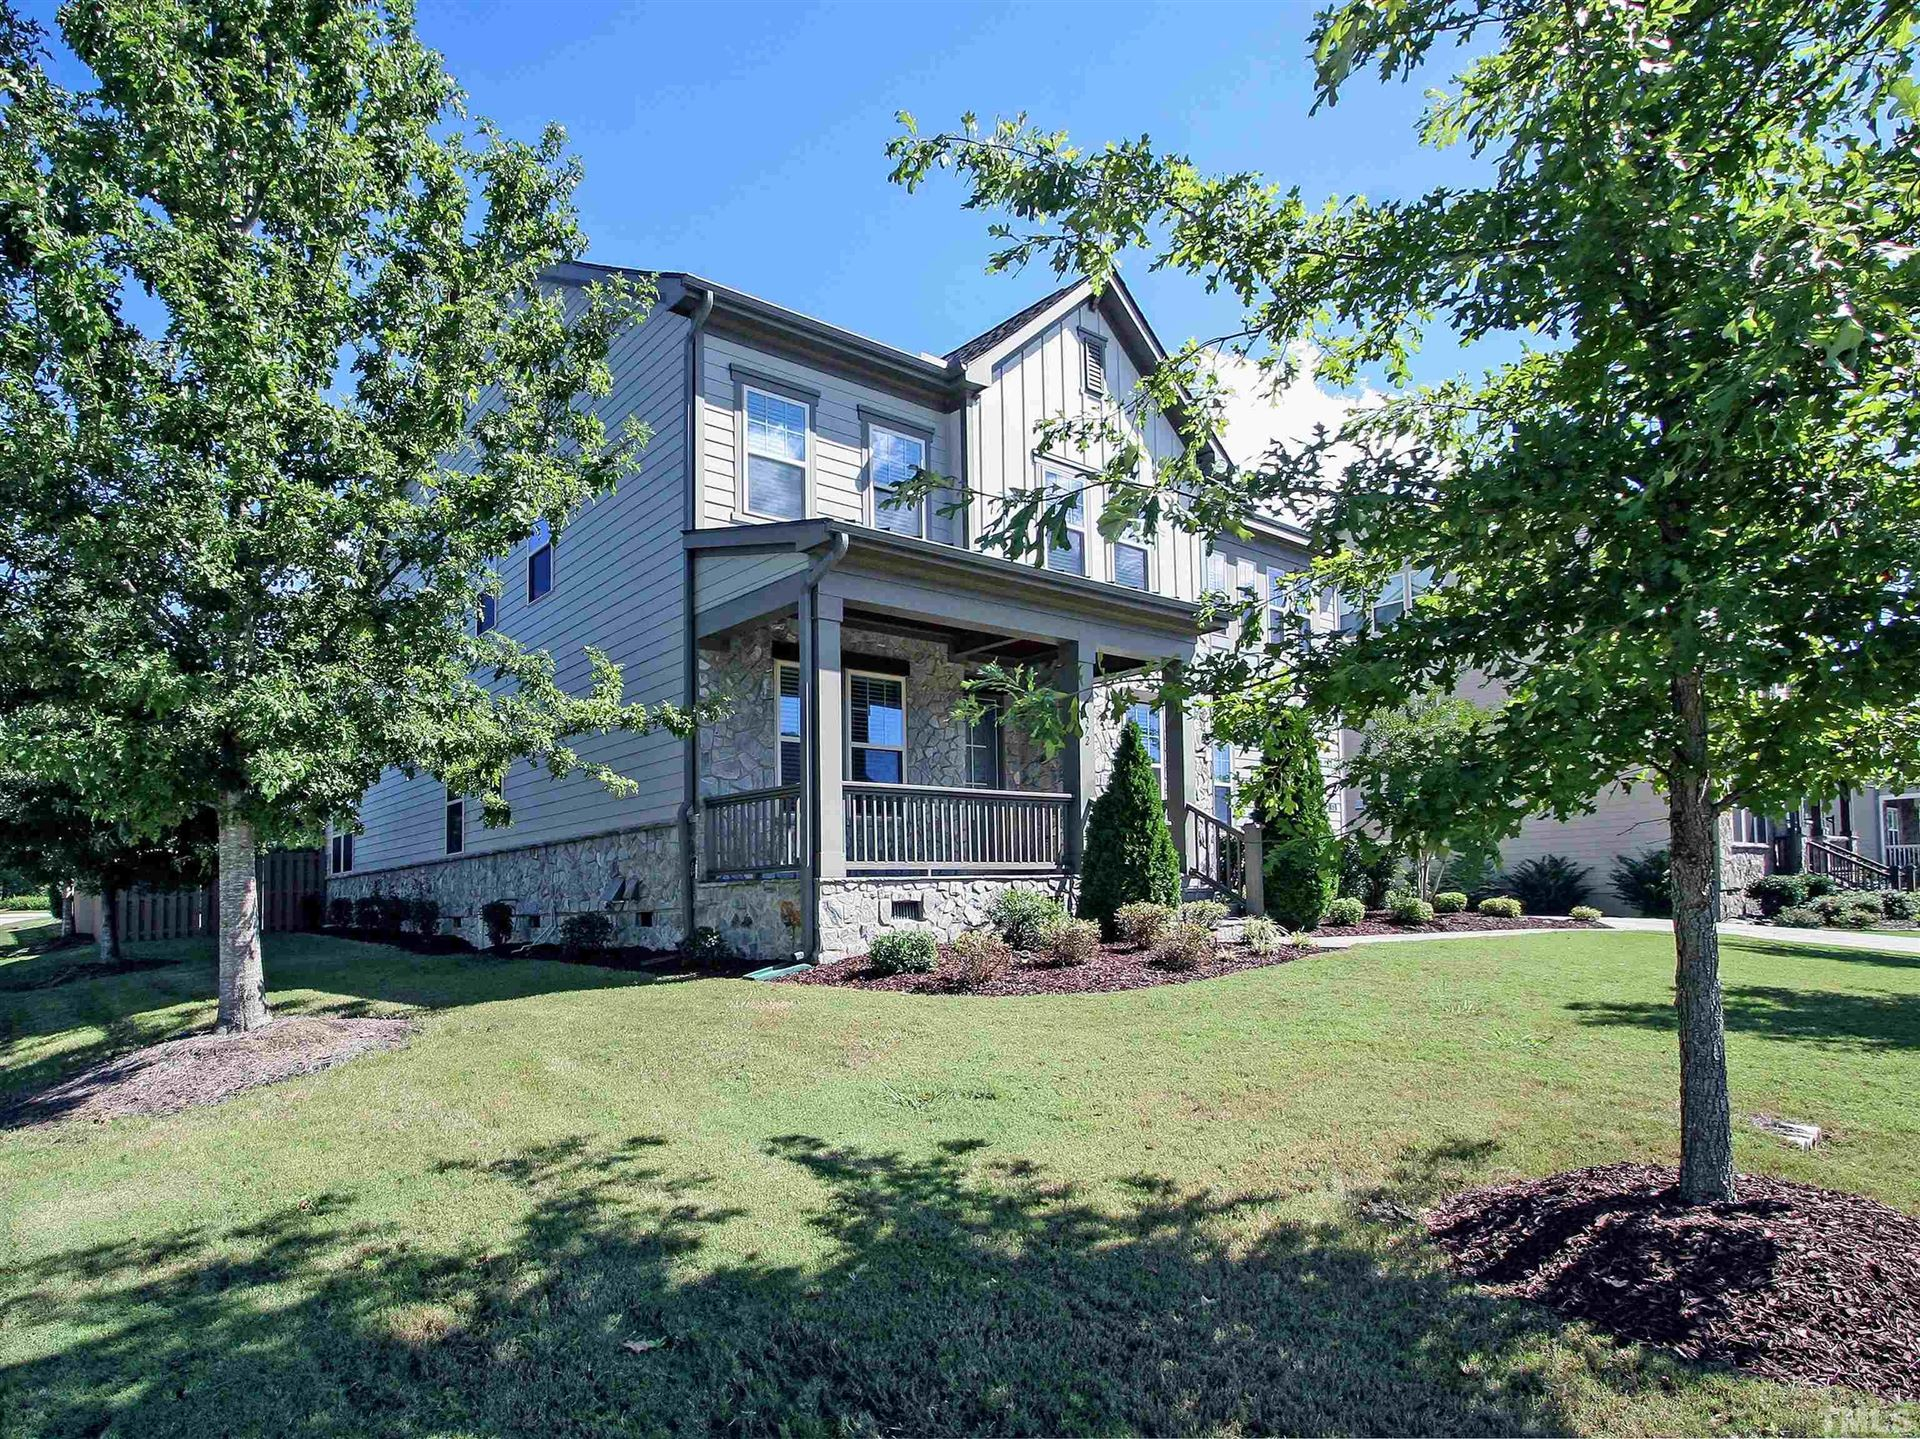 Photo of 372 Bolton Grant Drive, Cary, NC 27519 (MLS # 2409259)